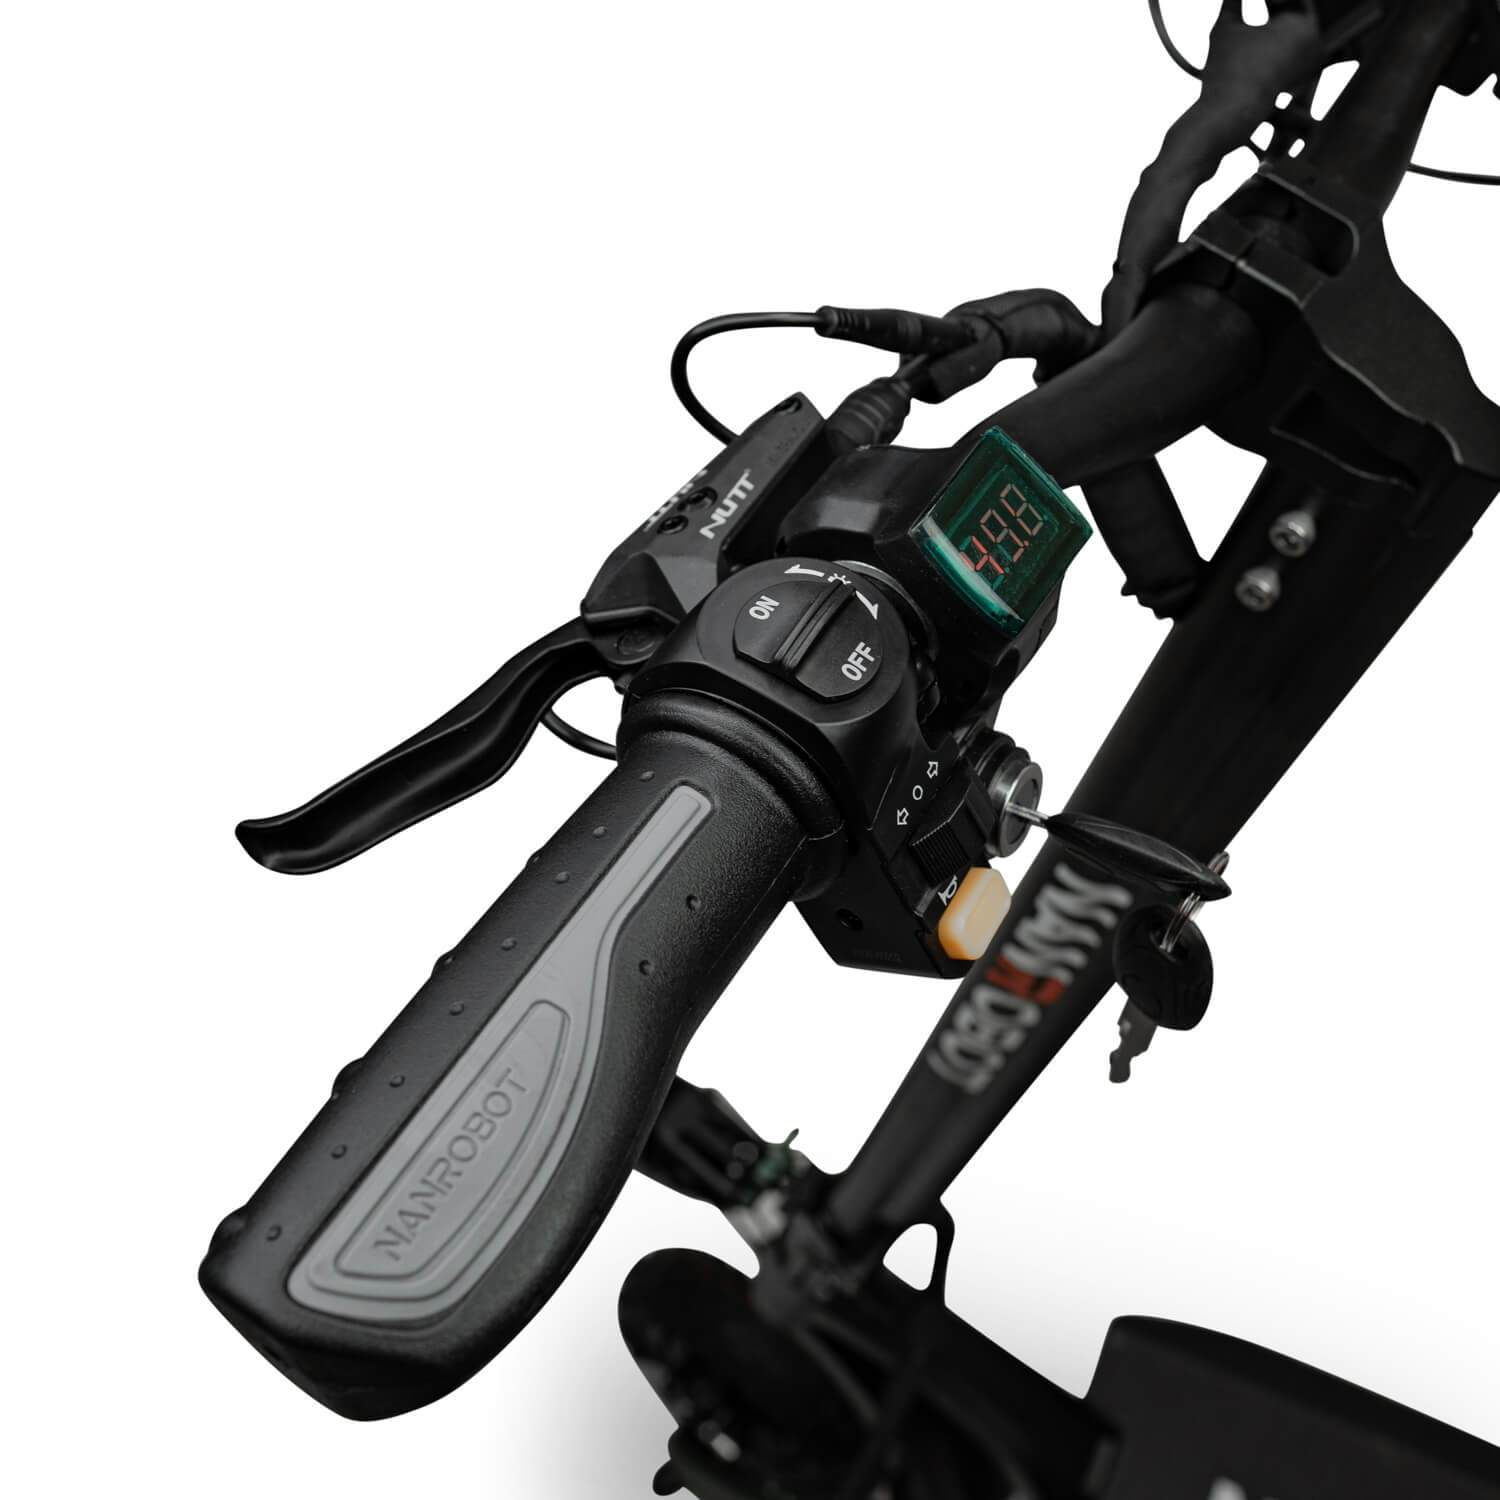 Nanrobot D6+ electric scooter grips